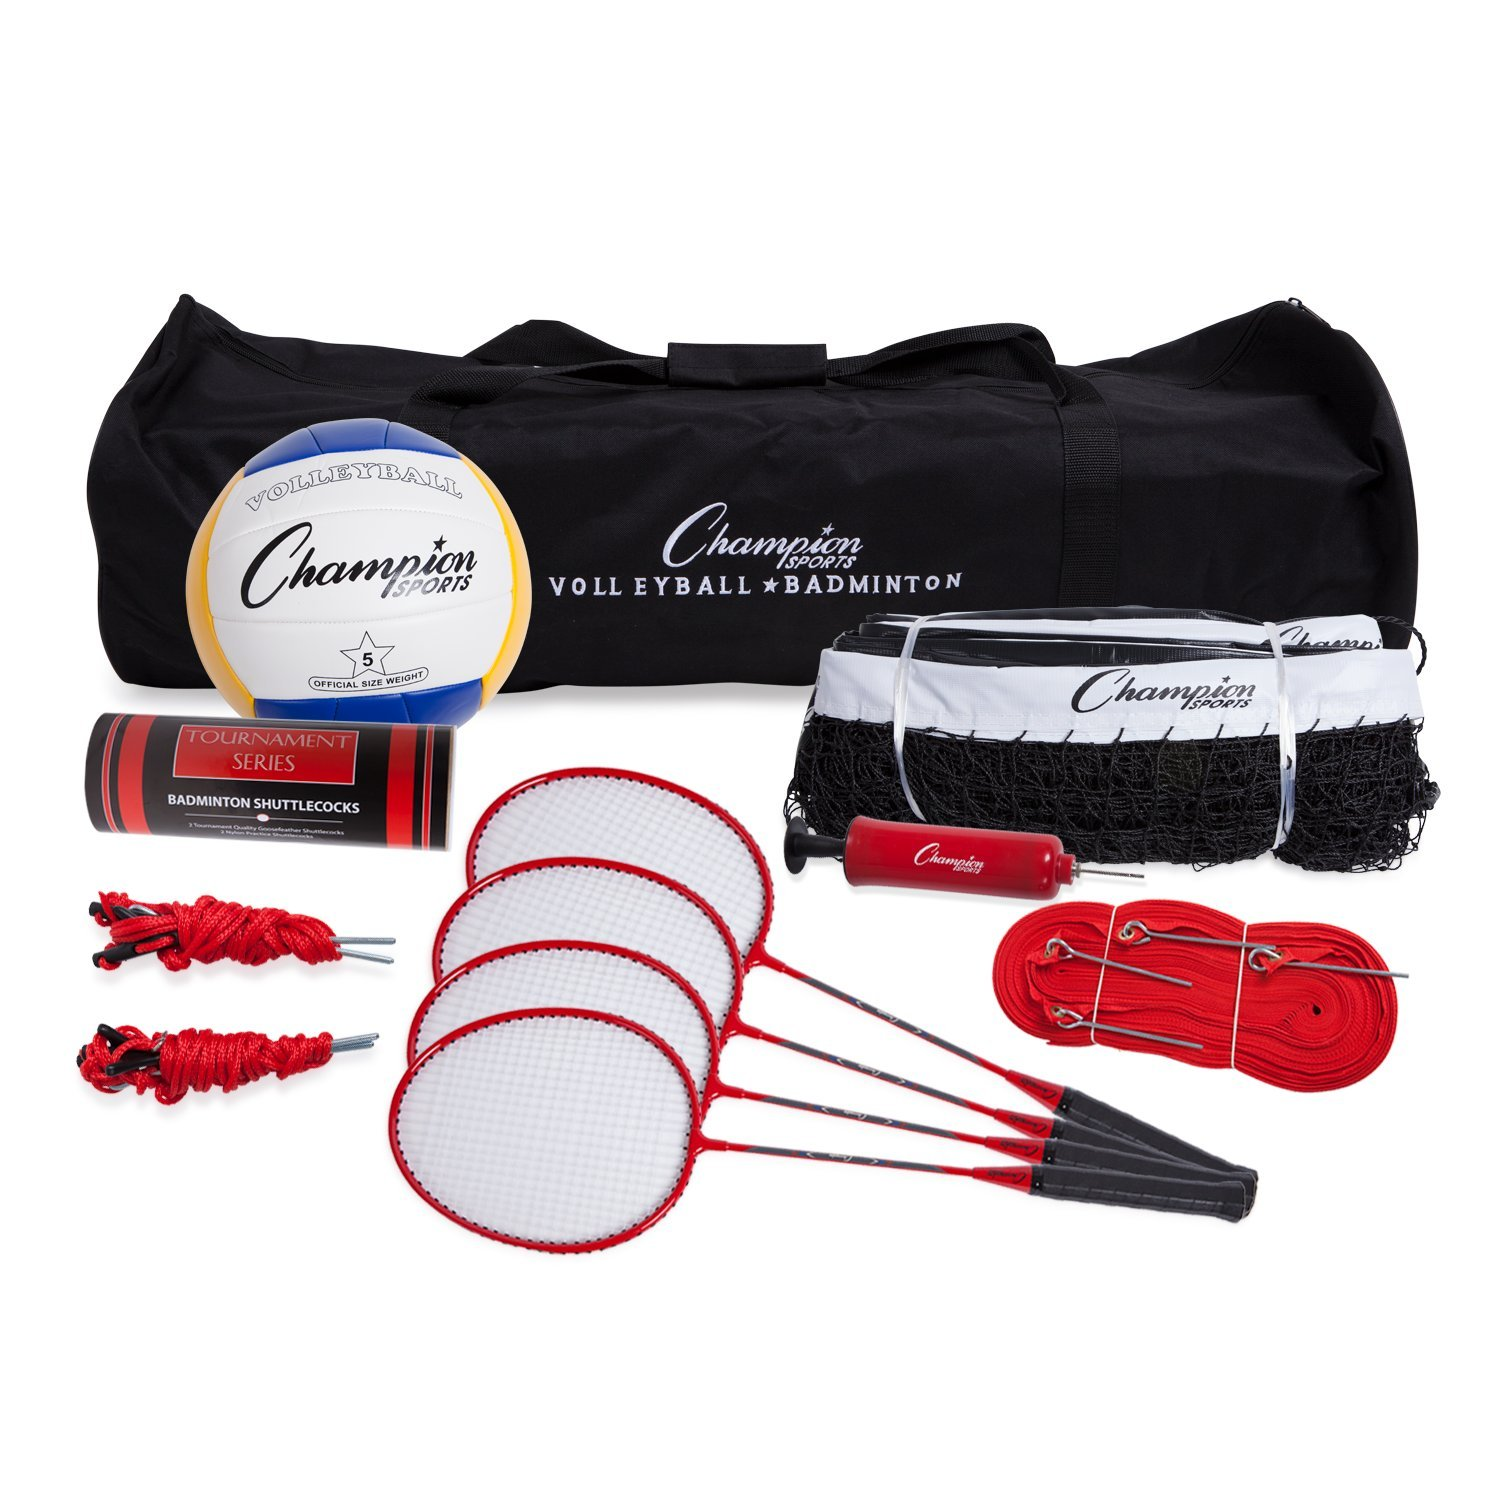 Champion Sports Volleyball & Badminton Set: Net, Poles, Ball, Rackets & Shuttlecocks - Portable Equipment for Outdoor, Lawn, Beach & Tournament Games by Champion Sports (Image #1)